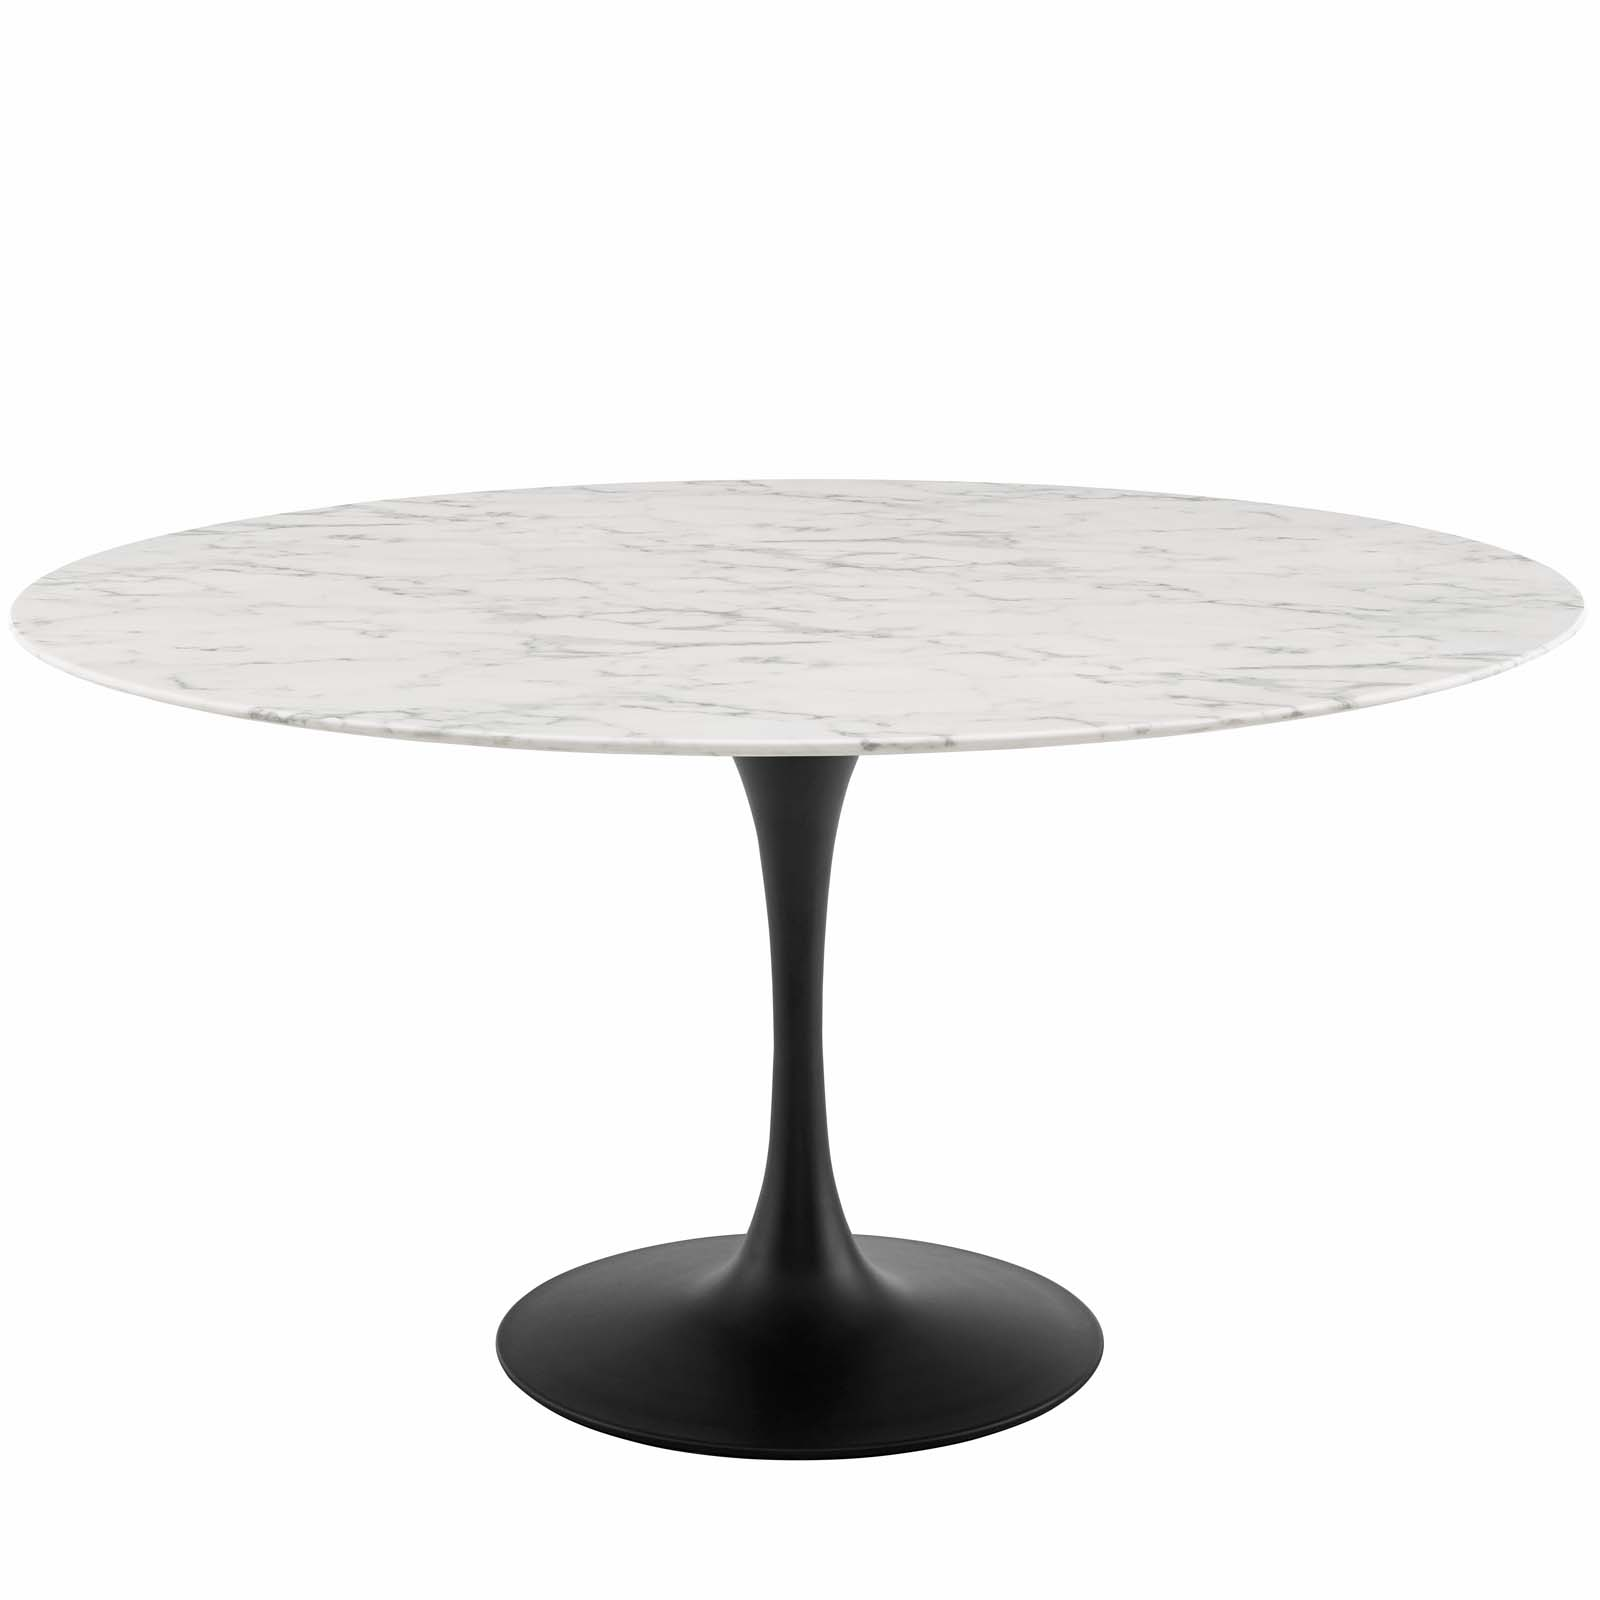 Lippa Black And White 60 Inch Round Artificial Marble Dining Table Eei 3529 Blk Whi 1stopbedrooms